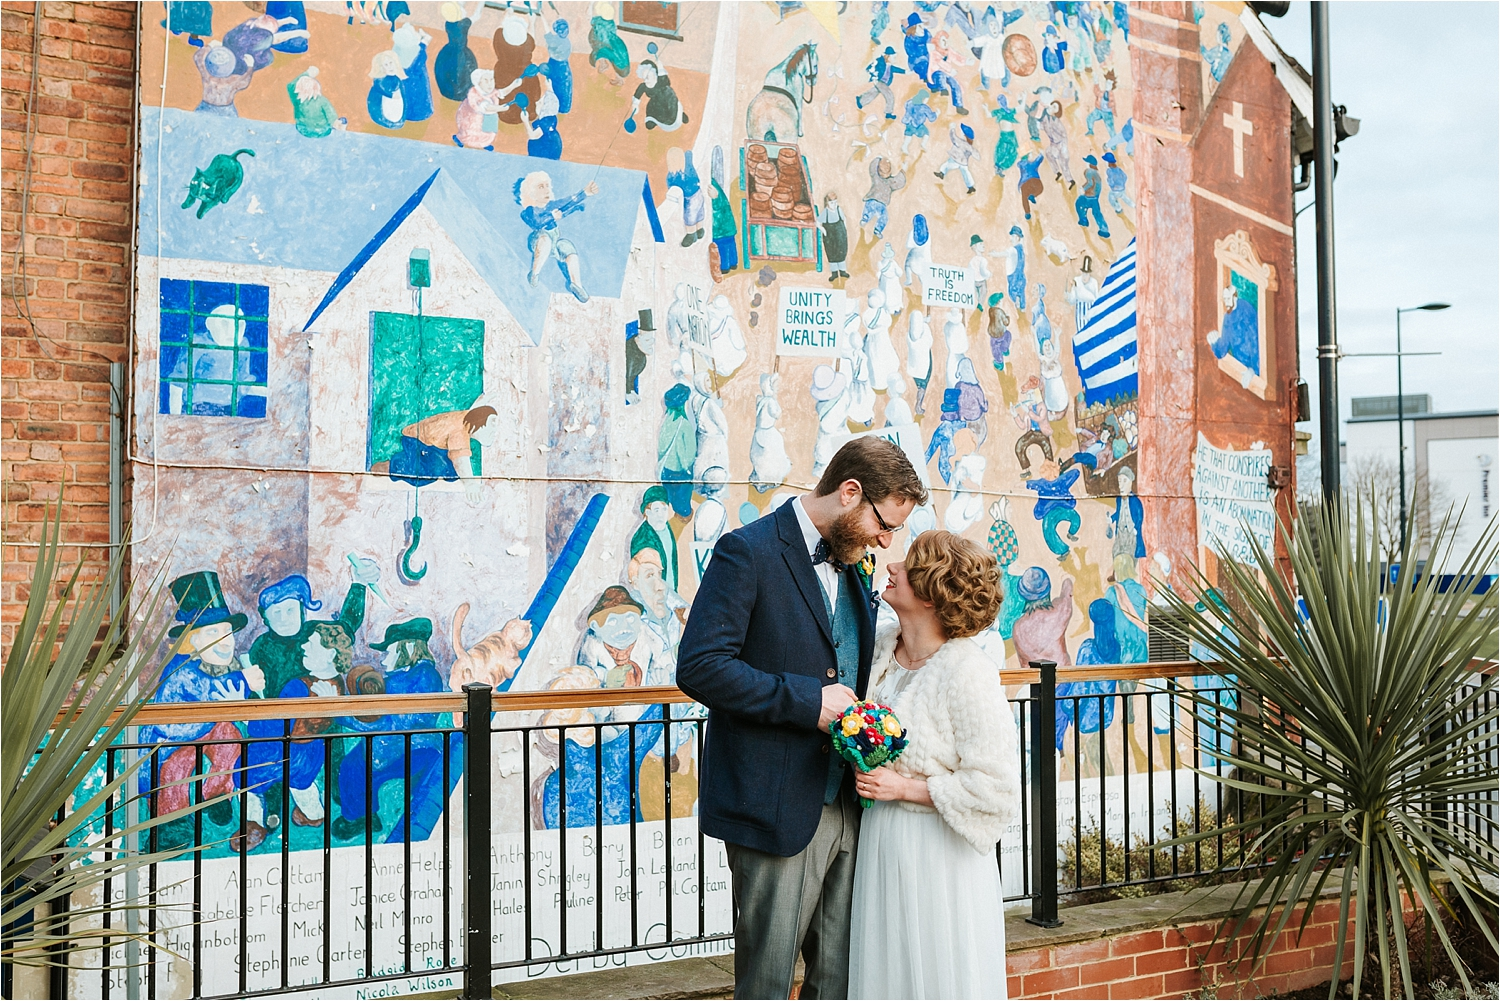 Victoria-Ben-The-West-Mill-darley-abbey-natural-relaxed-documentary-wedding-photography-photographer-Derby-Nottingham-Derbyshire-Nottinghamshire-Leicestershire-Lincolnshire-East-Midlands_0143.jpg